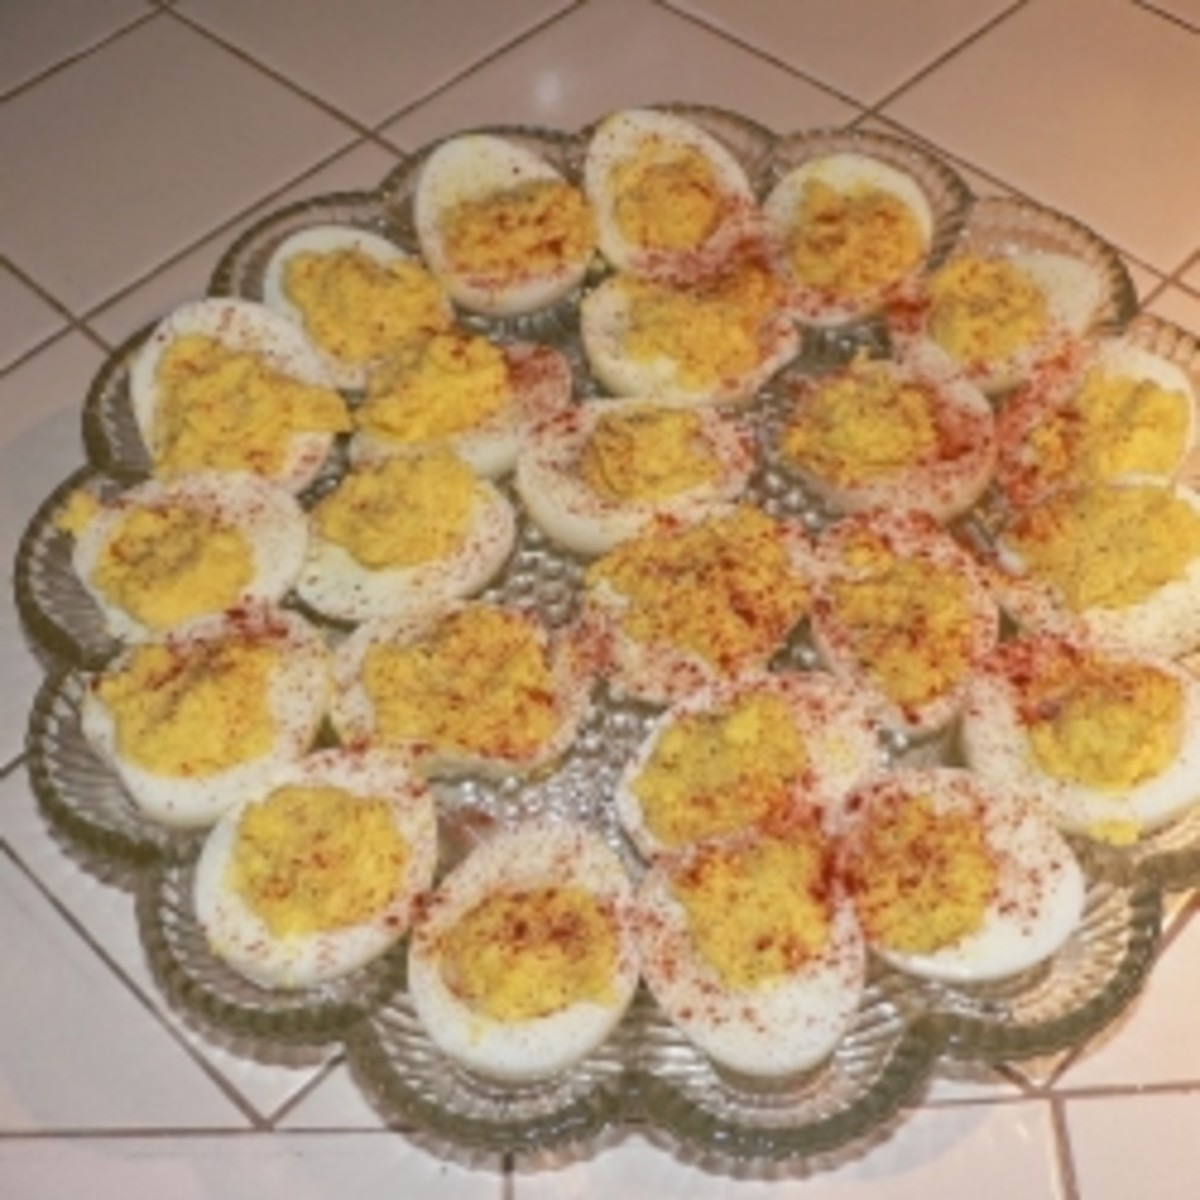 A Recipe for Stuffed Eggs, Tasha Tudor Style